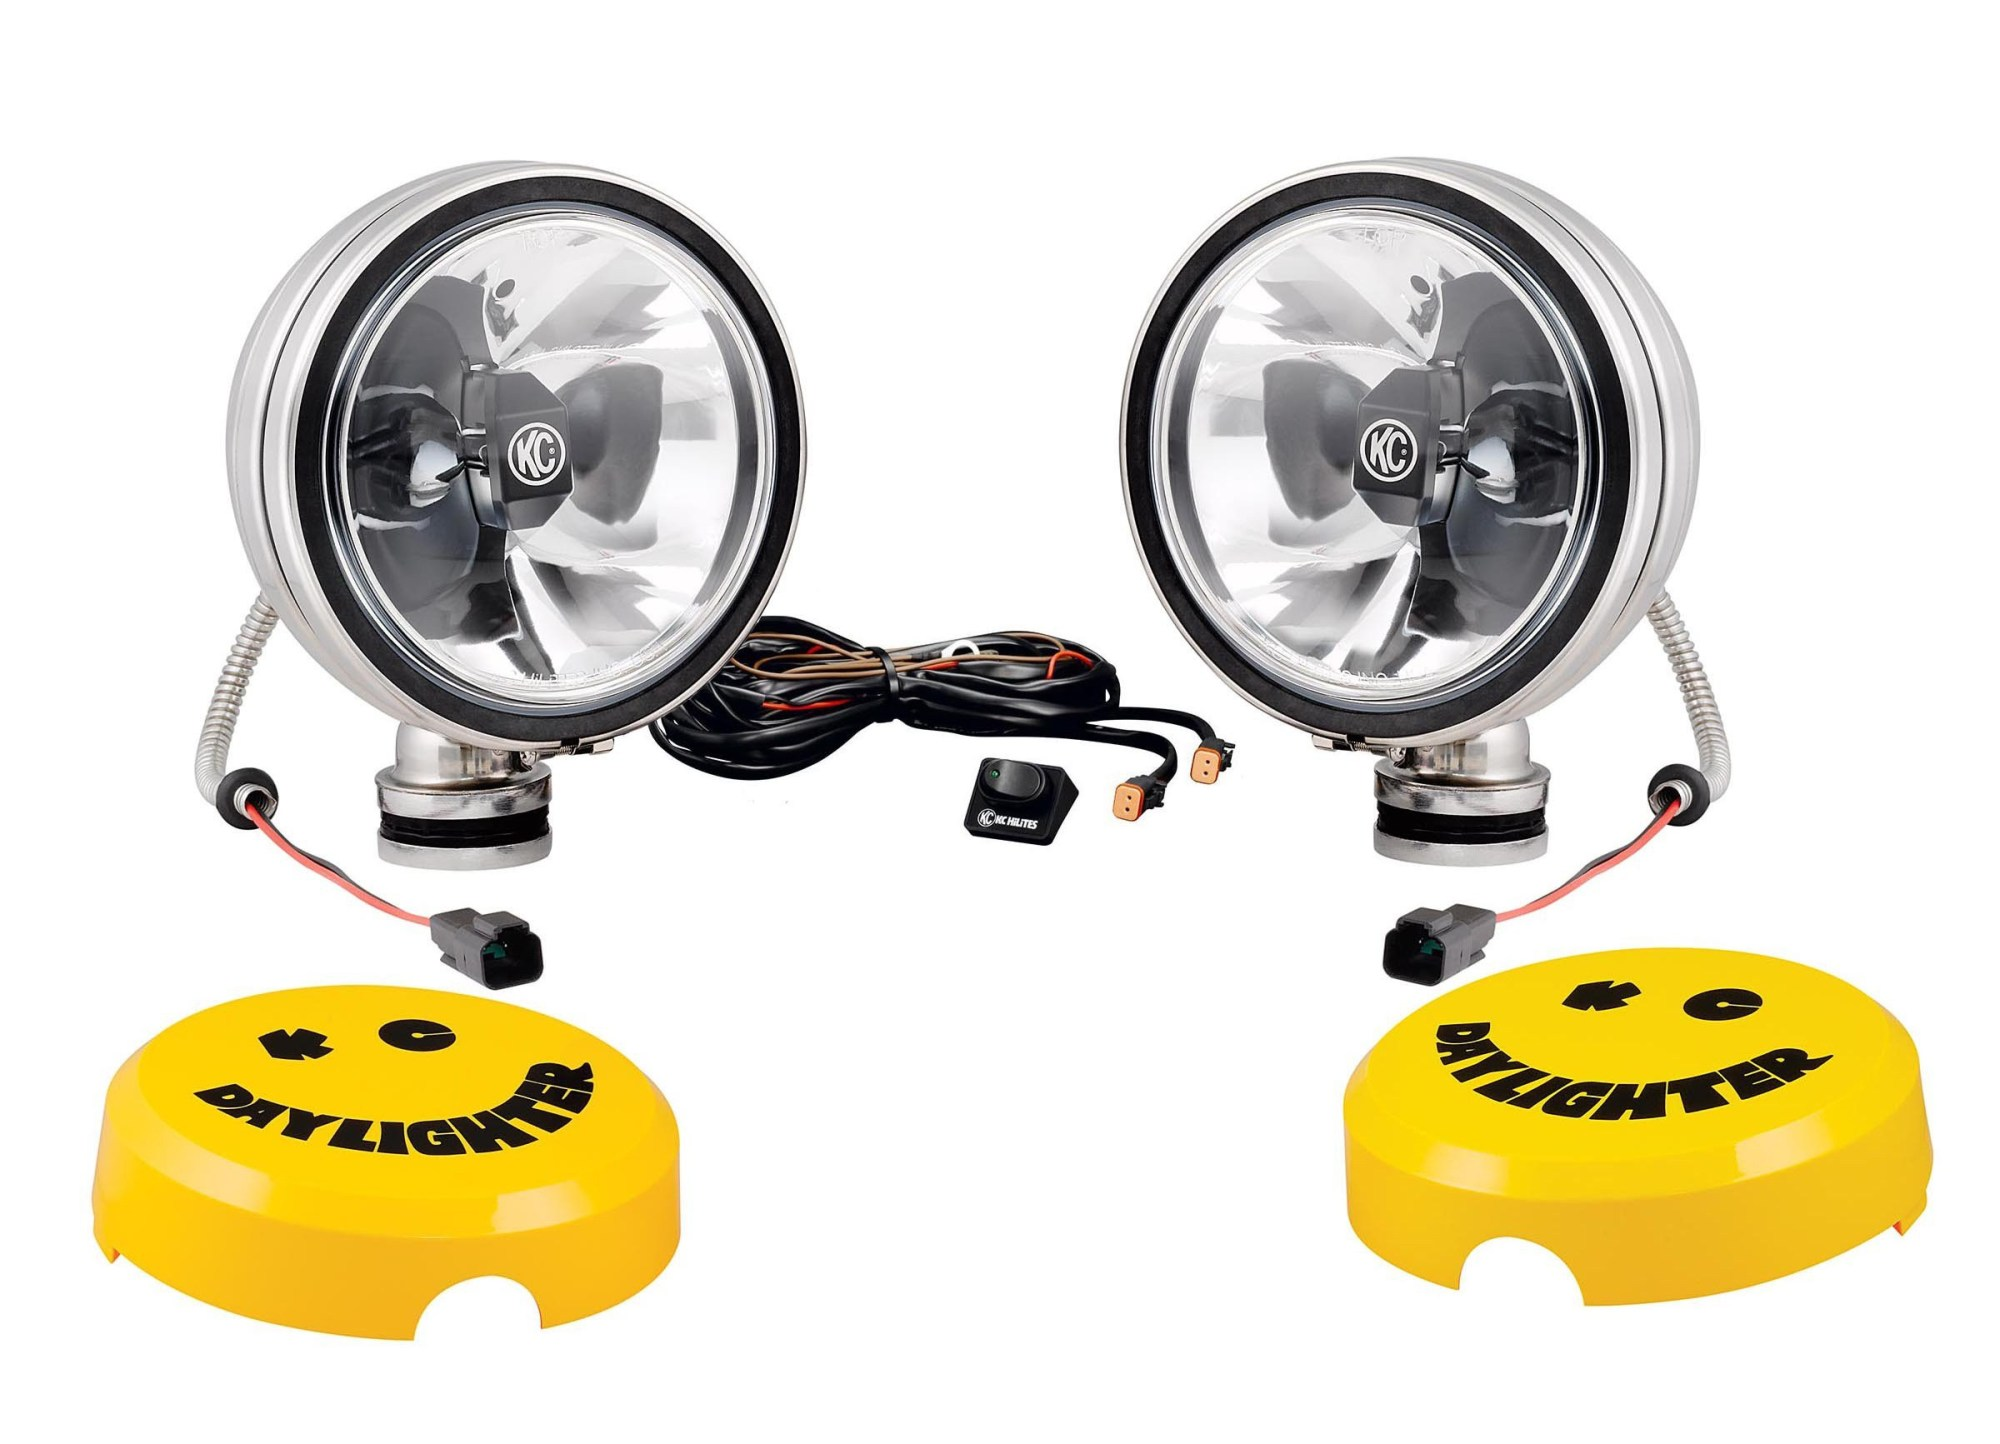 hight resolution of just jeeps kc hilites 6 daylighter with gravity led g6 pair pack system spot in stainless steel lights offroad led lights accessories shop by part